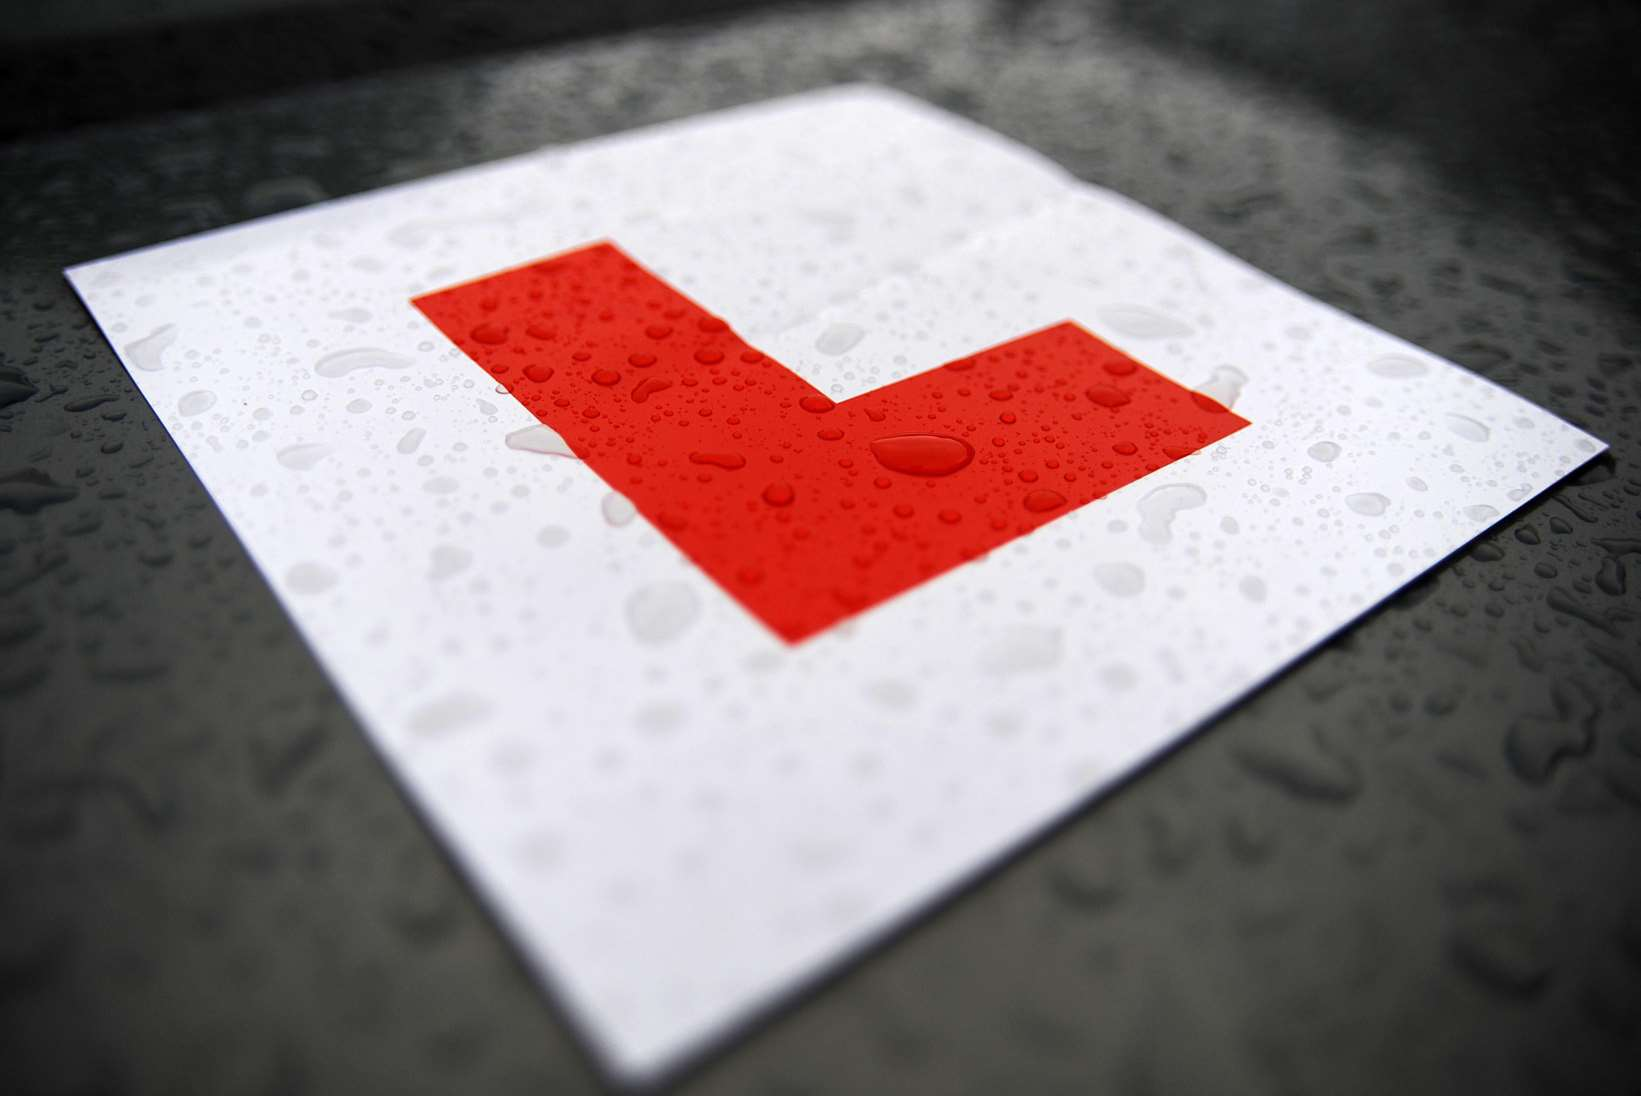 L-plate for learner drivers